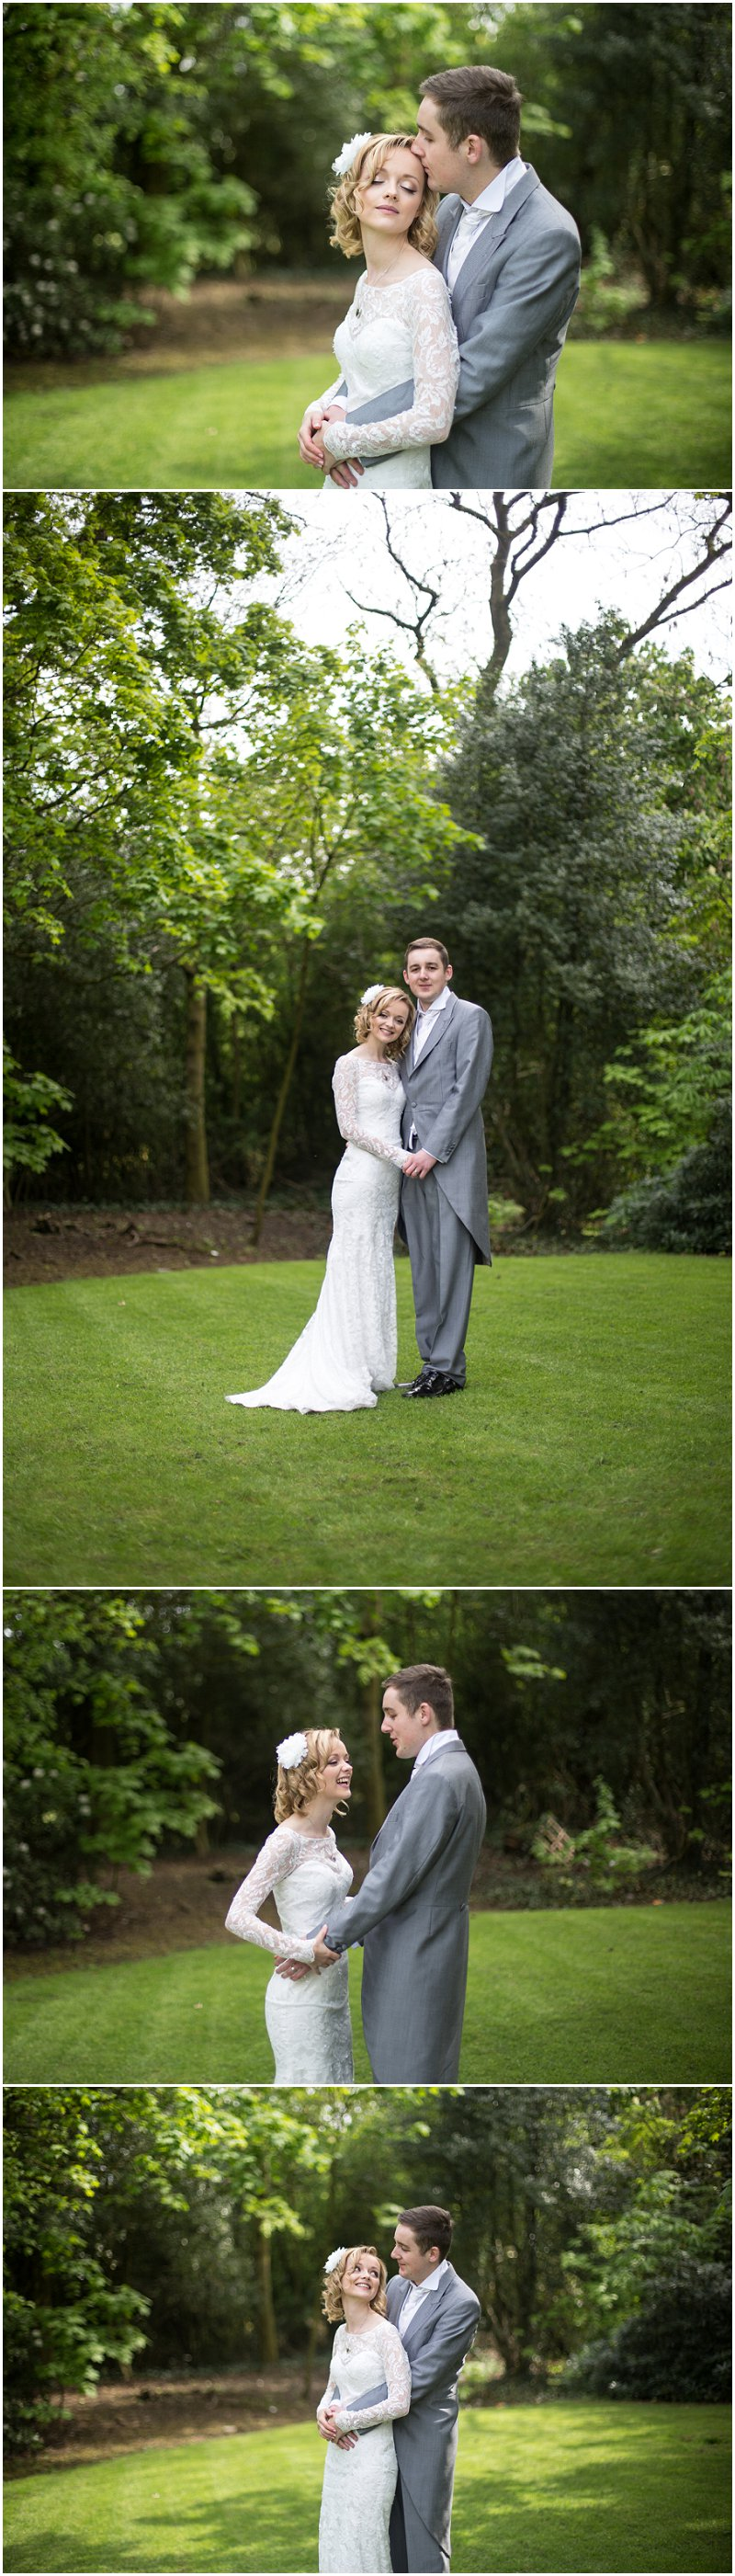 Beautiful bride and groom in gardens at Ashfield House Standish